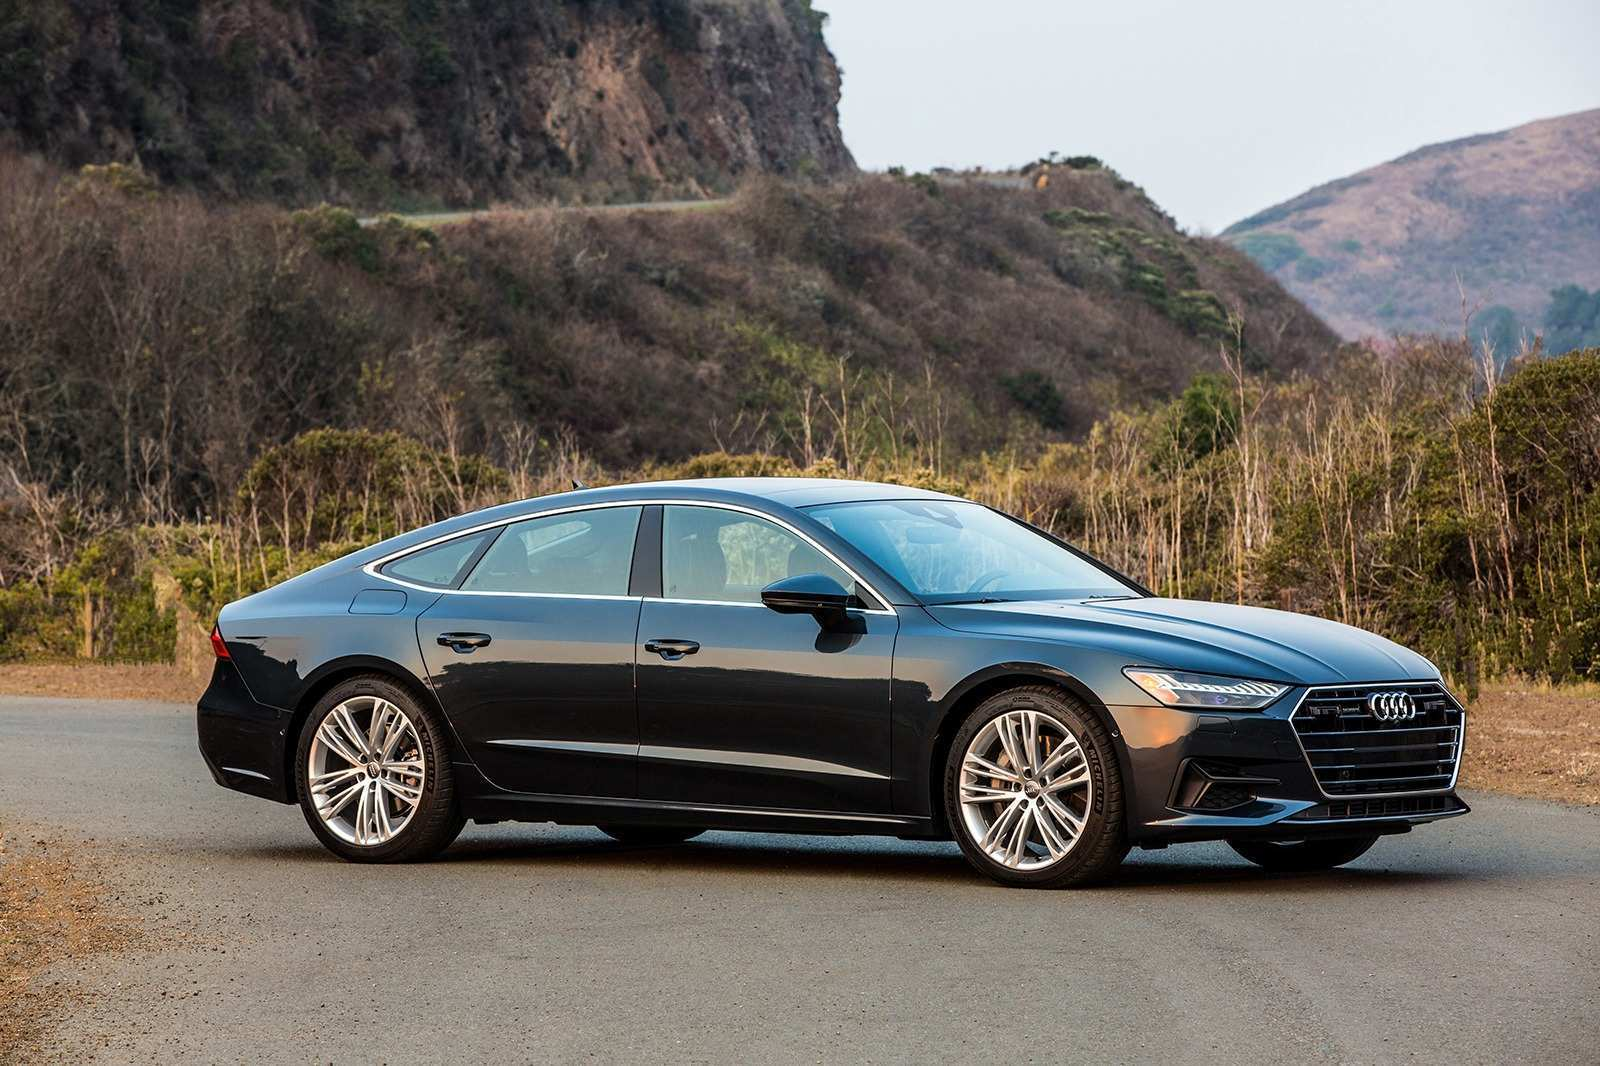 92 The Best 2019 Audi S7 Engine Performance And New Engine Concept by Best 2019 Audi S7 Engine Performance And New Engine